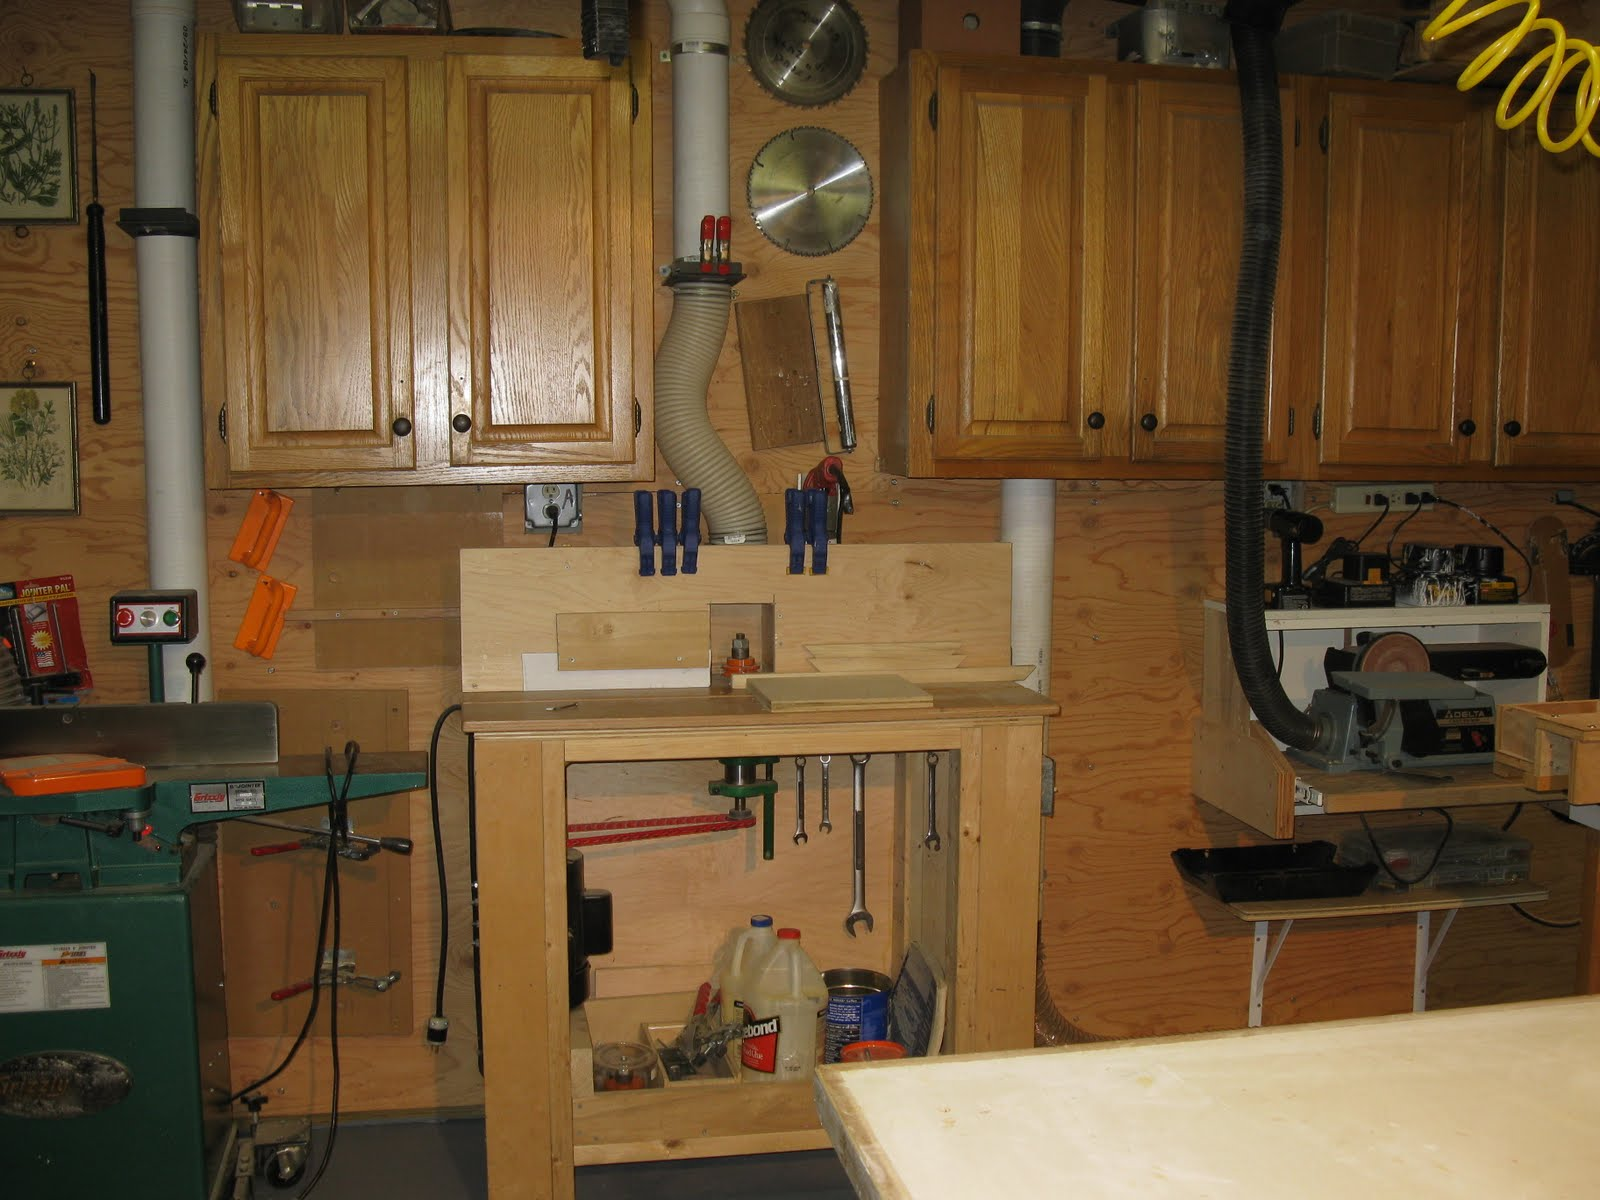 This Allows Me A Small Amount Of Wall Space To Hang Items My Table Saw And Shaper Which Is Directly Below It